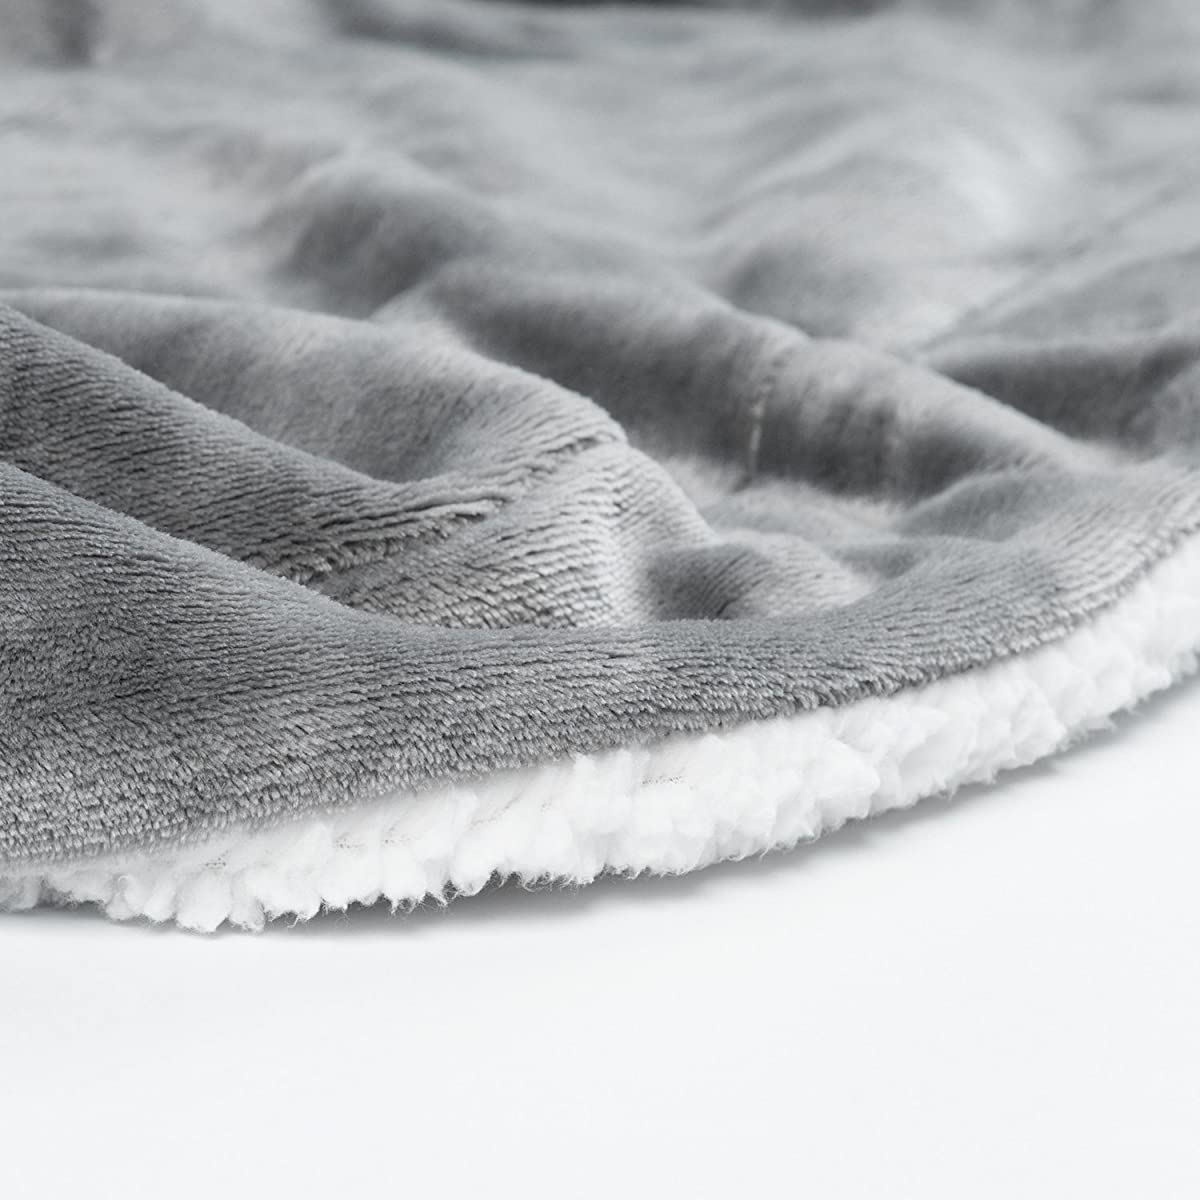 Sherpa Throw Blanket Lt Grey 50x60 Reversible Fuzzy Microfiber All Season Blanket for Bed or Couch by Bedsure